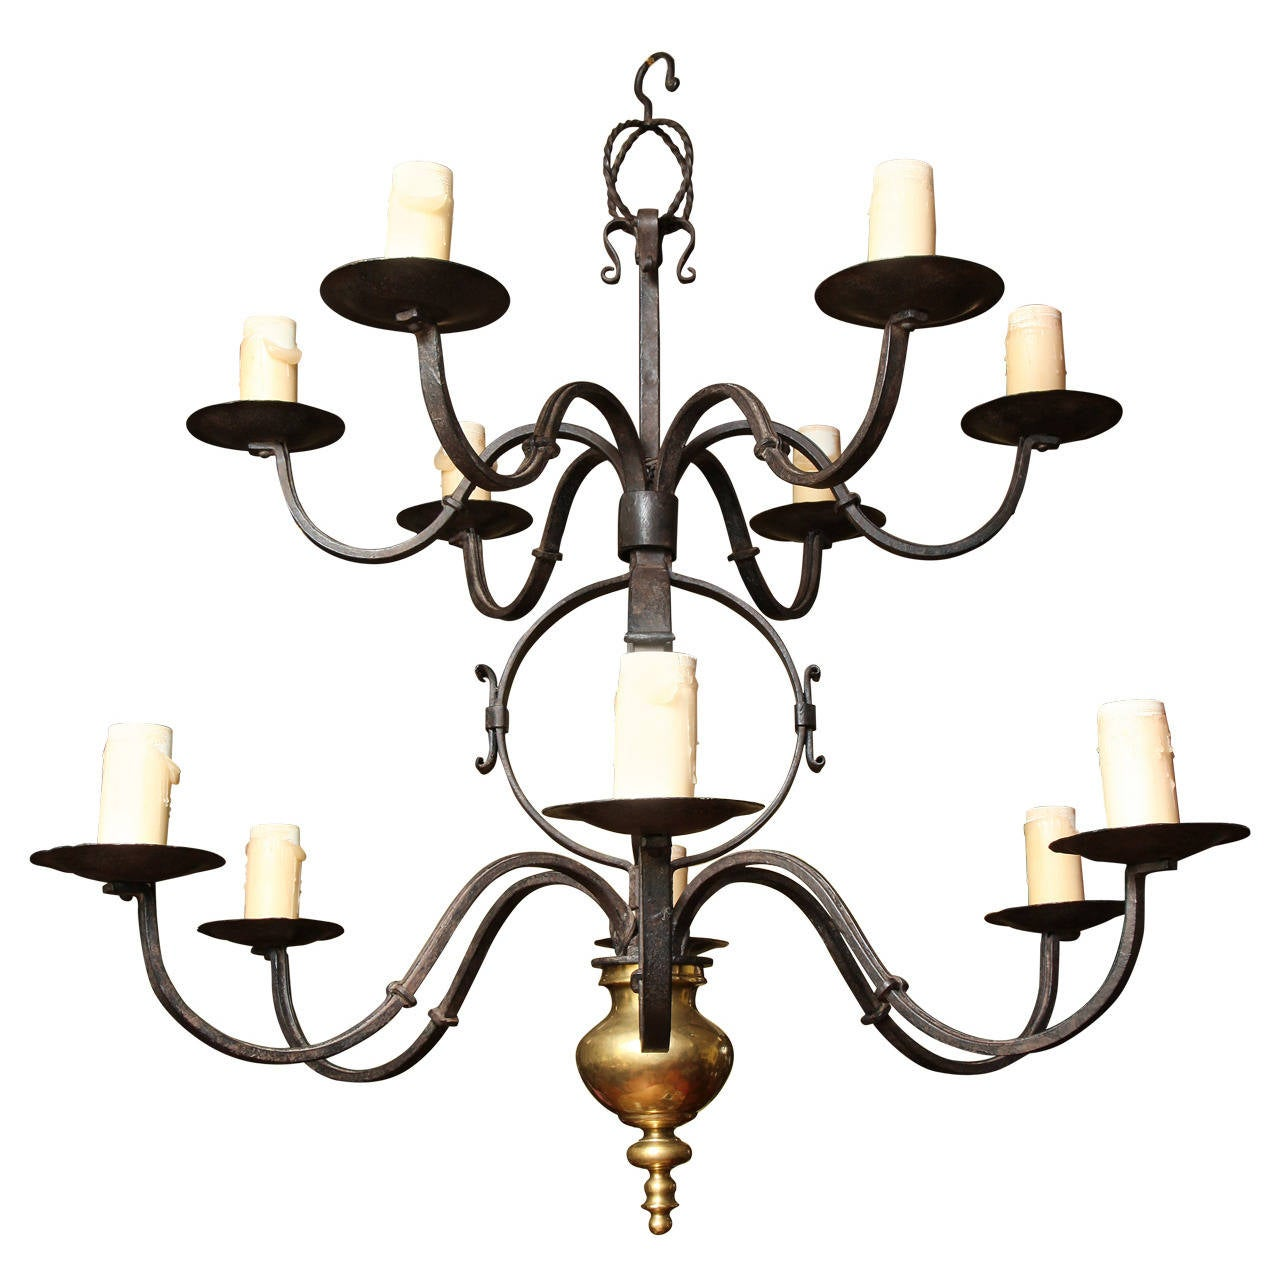 Two-Tier Hand-Forged Iron and Brass Twelve-Light Chandelier